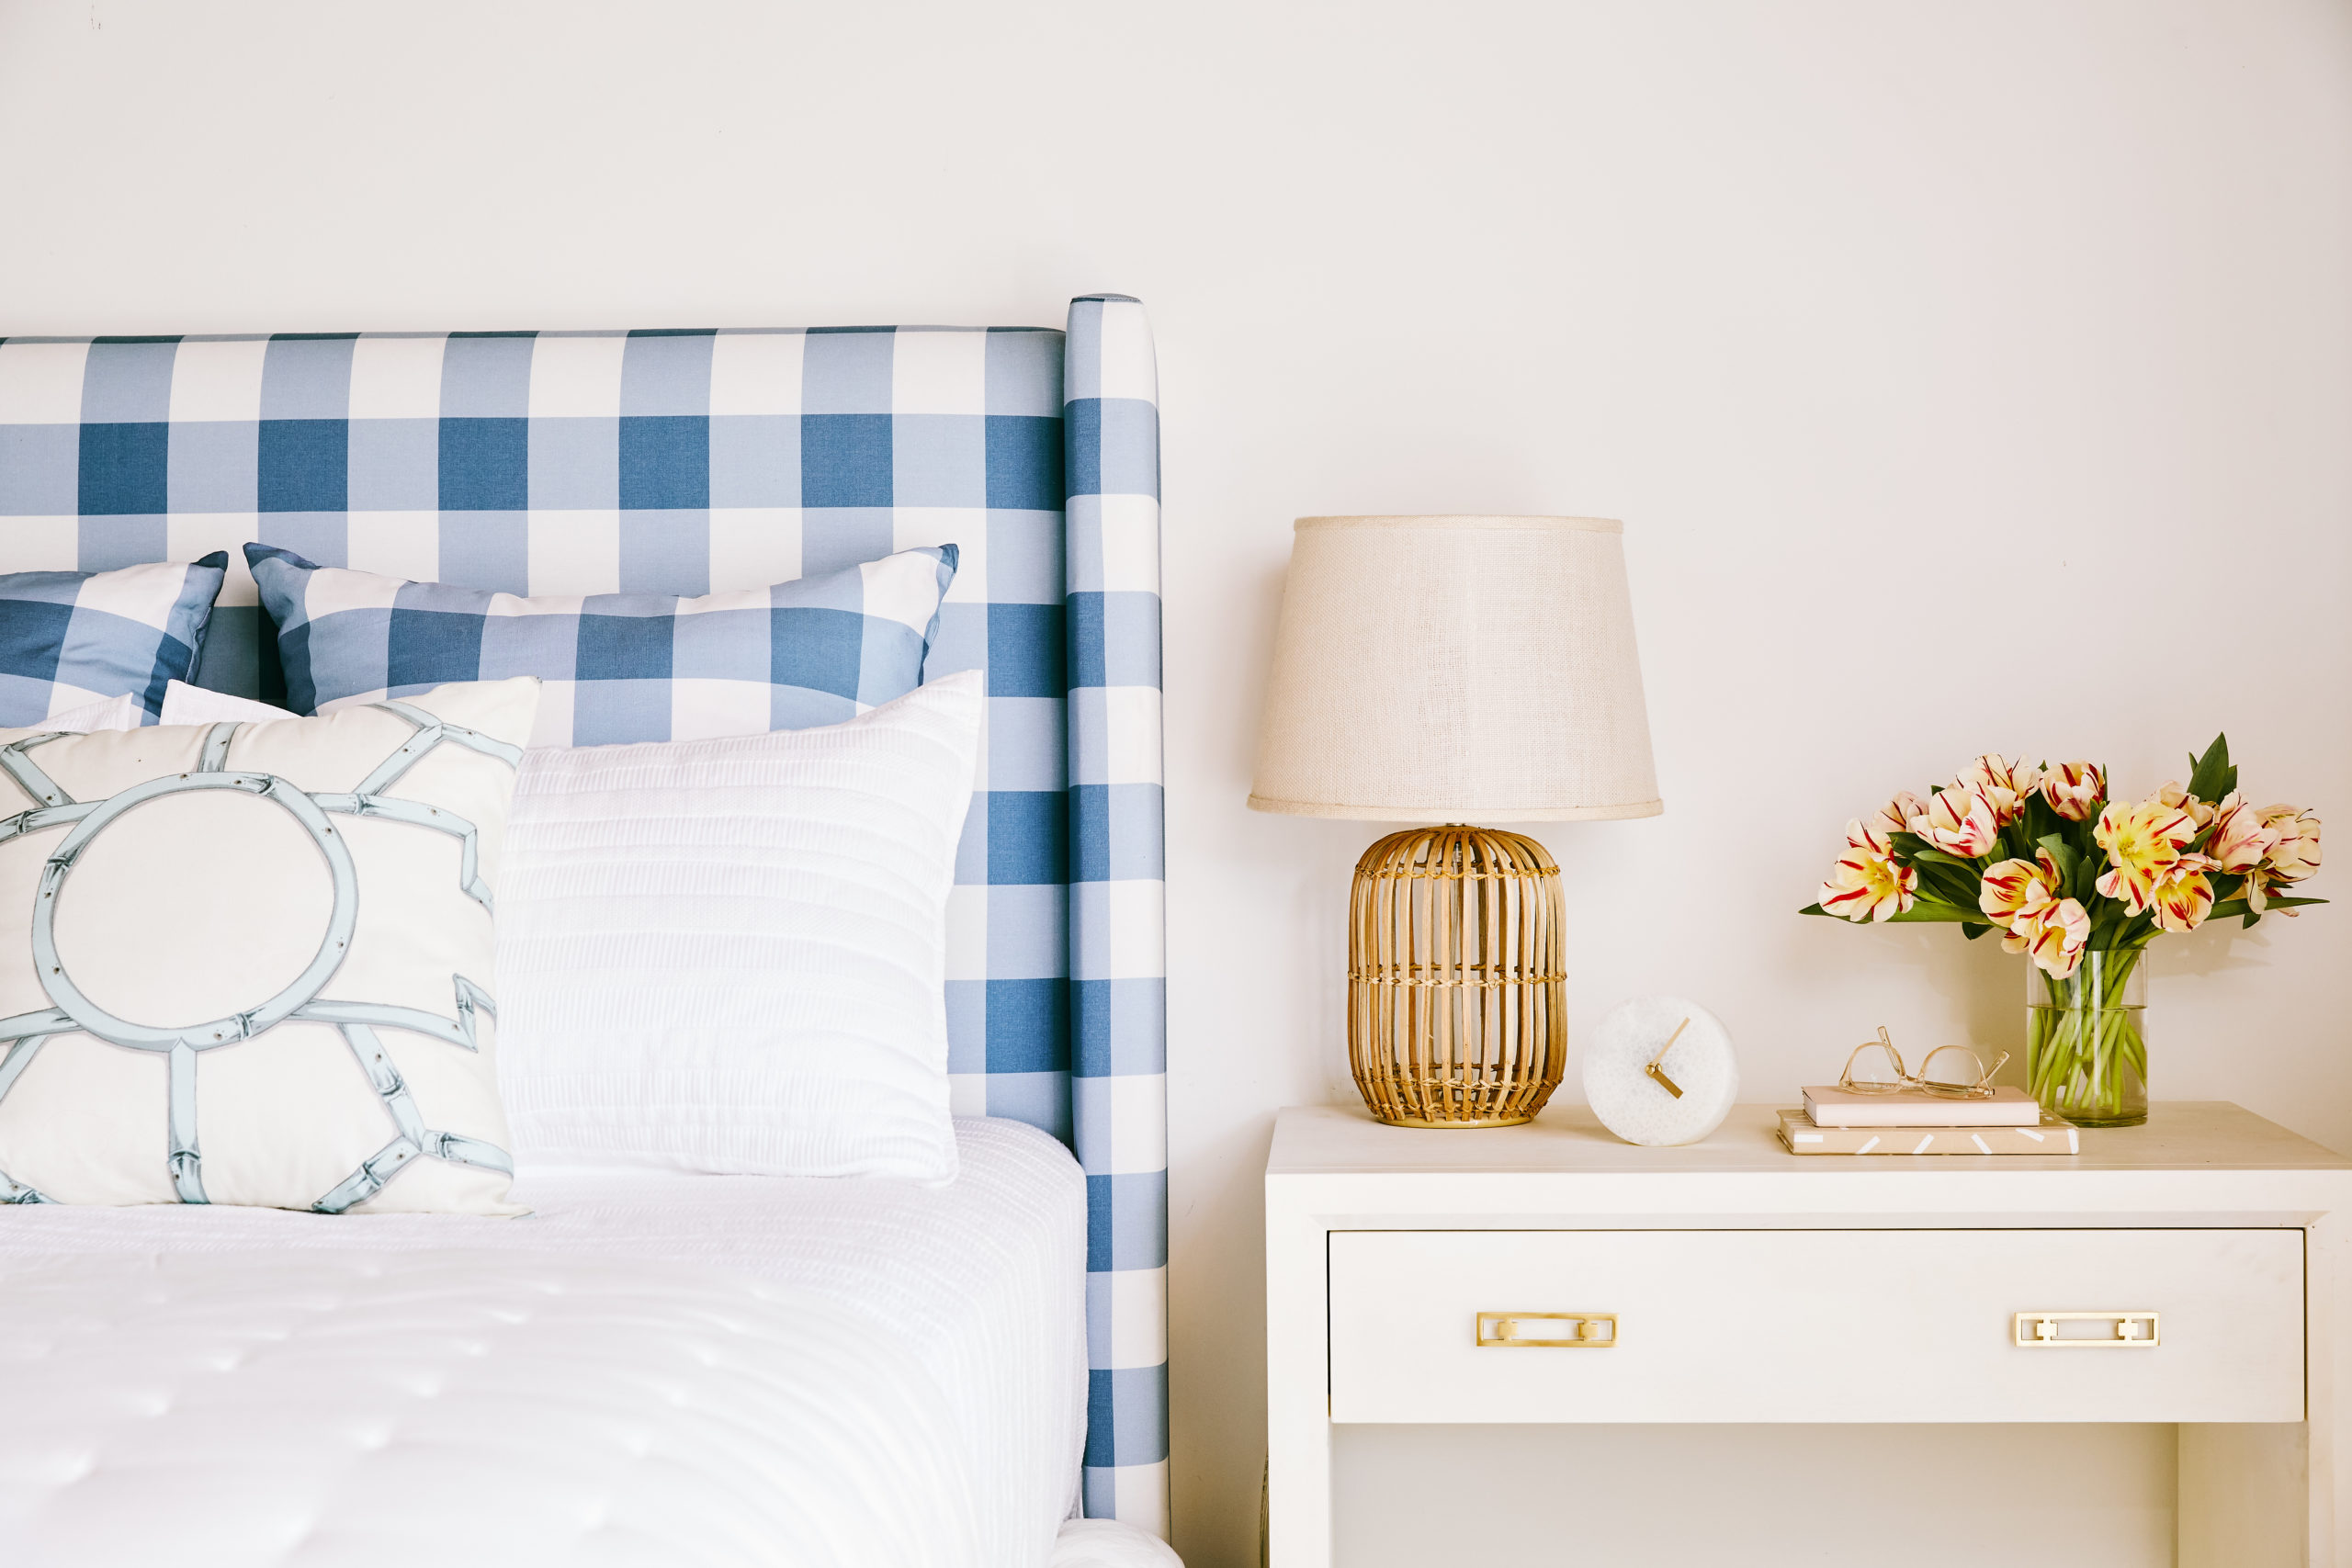 How to Make Your Home Look Picture Perfect